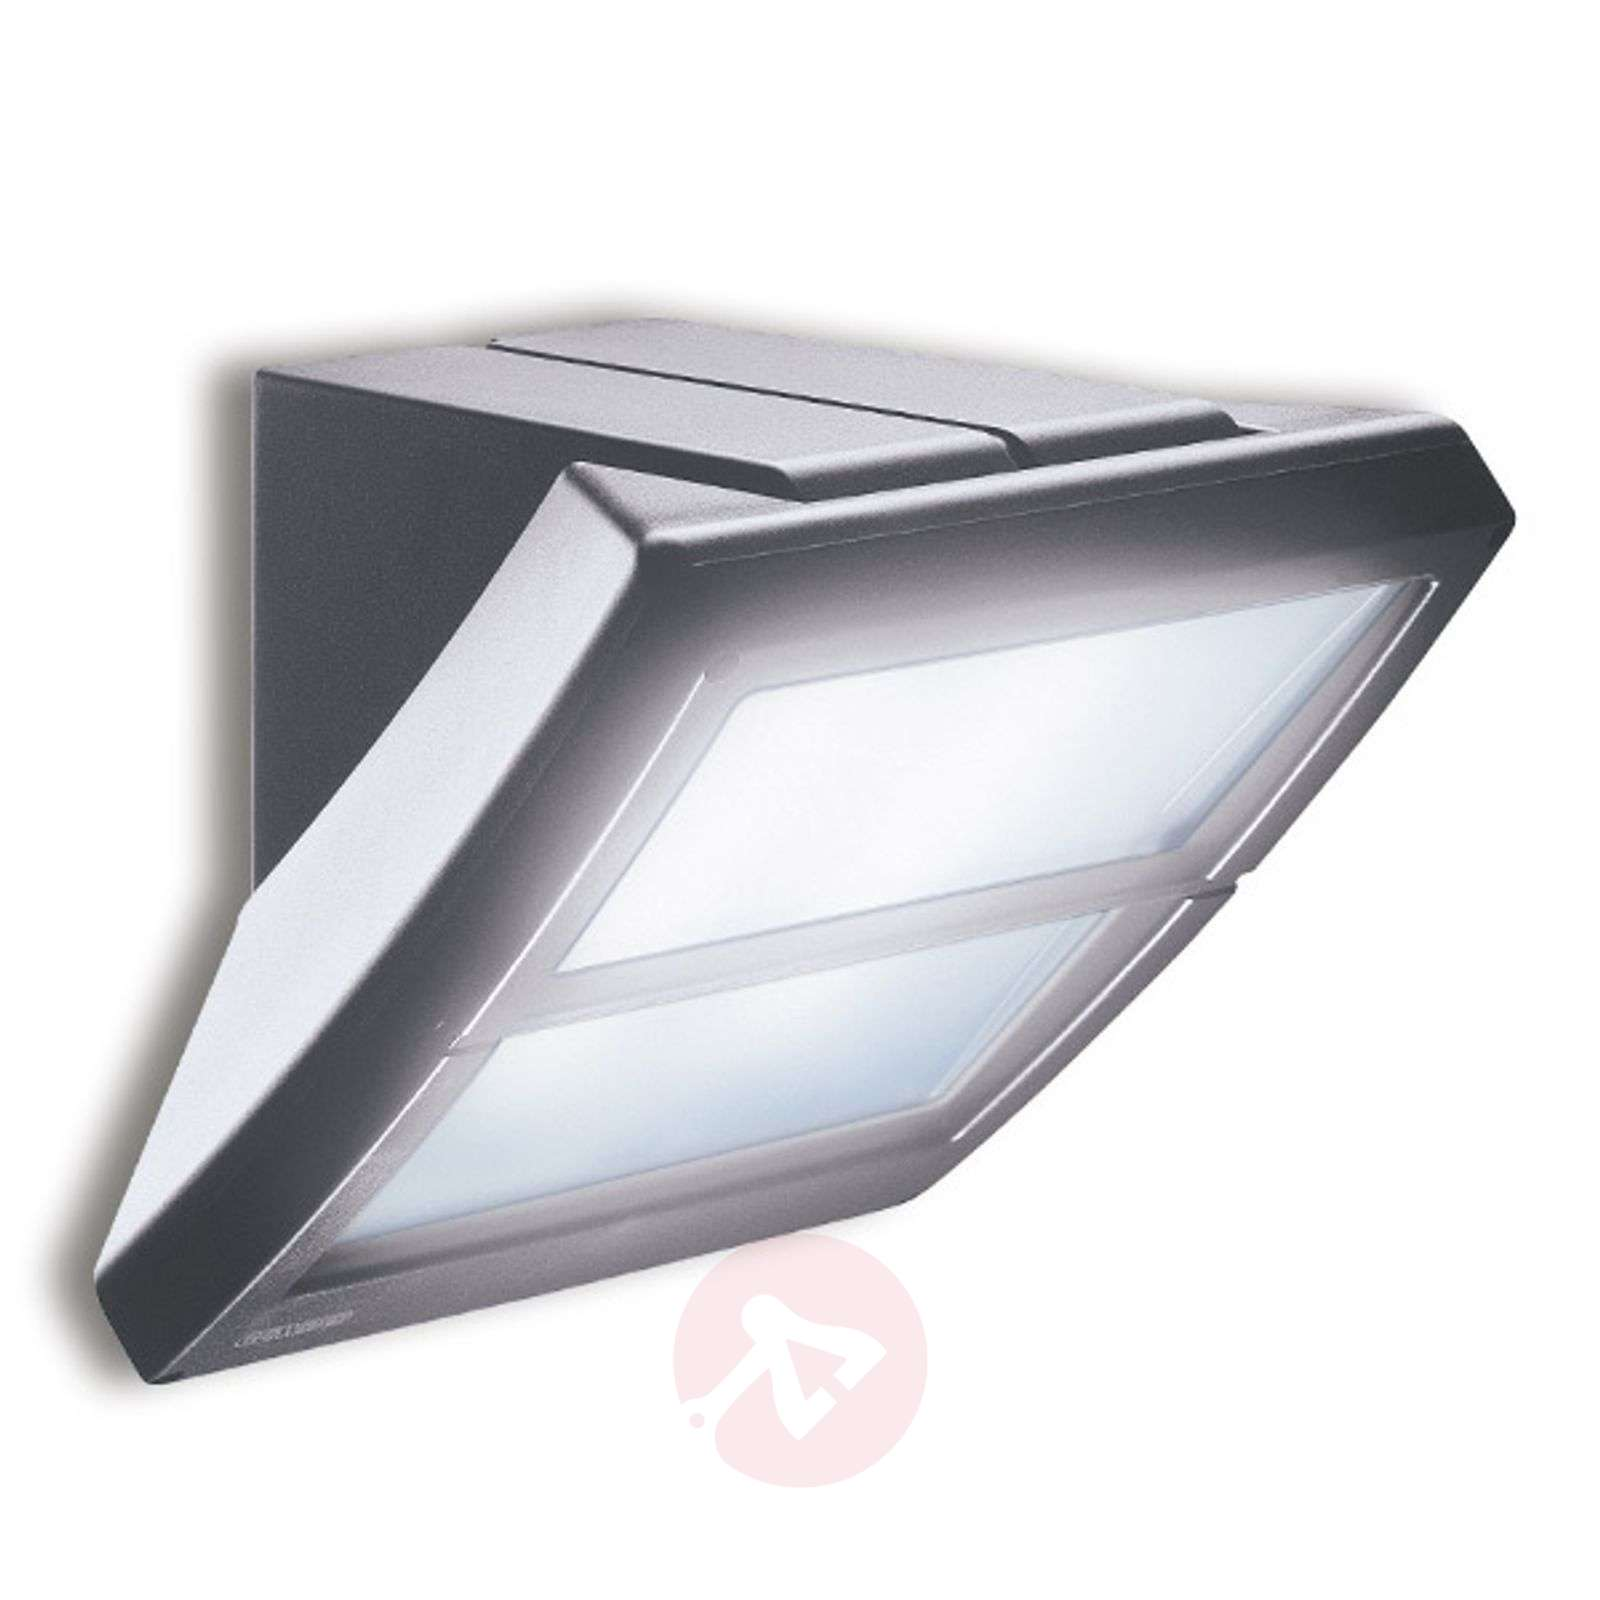 Versatile LED outdoor wall light Extro, 26 W-4003088-01